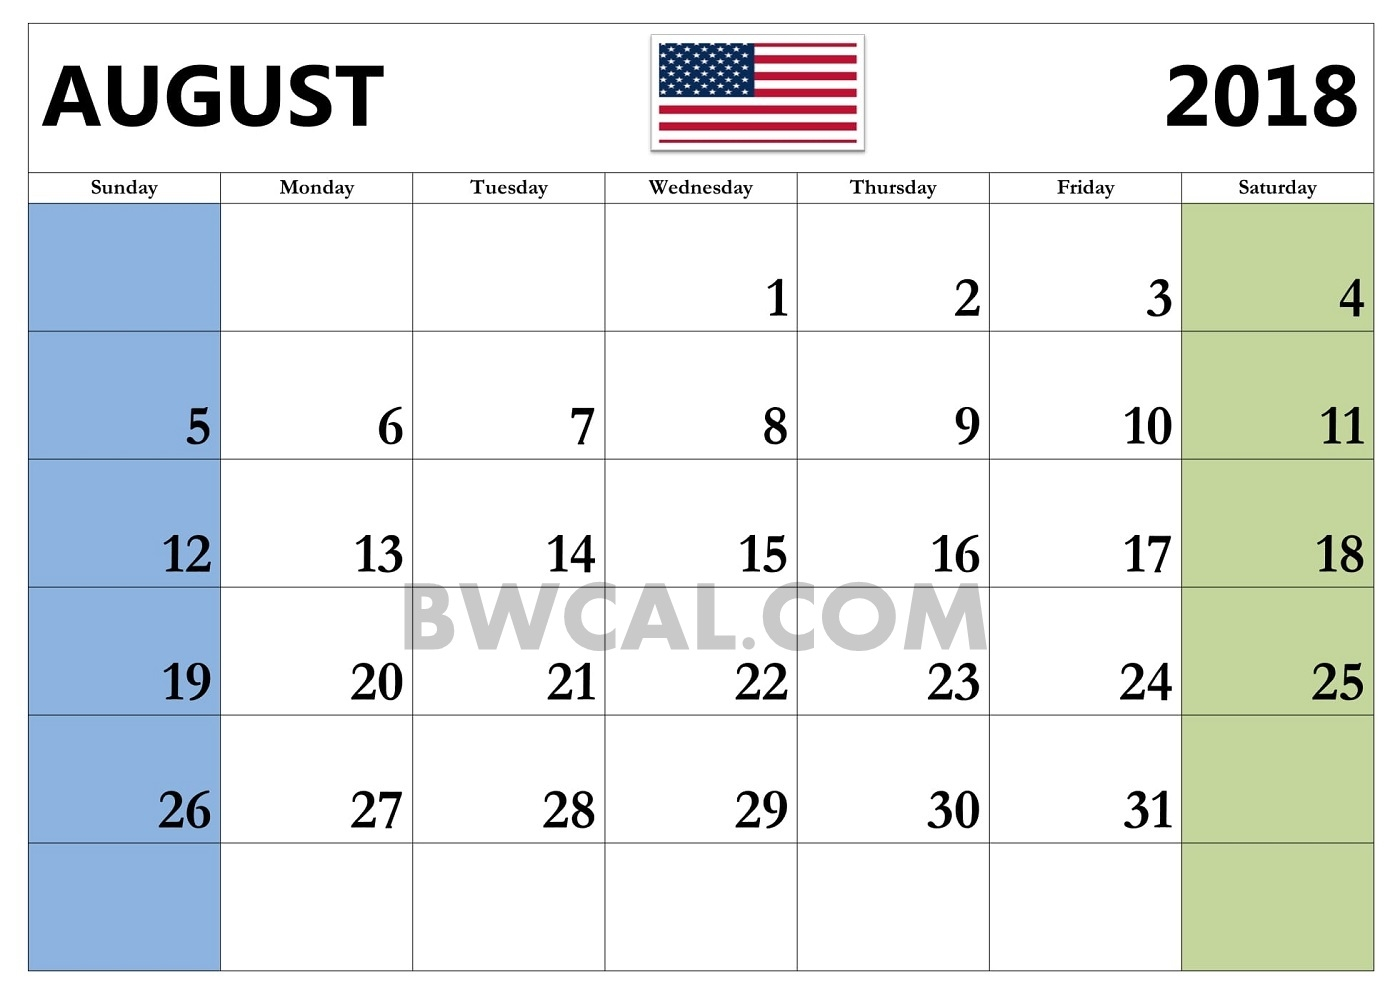 august 2018 calendar events calendar template printable Calendar August 2018 Printable Zodiac erdferdf